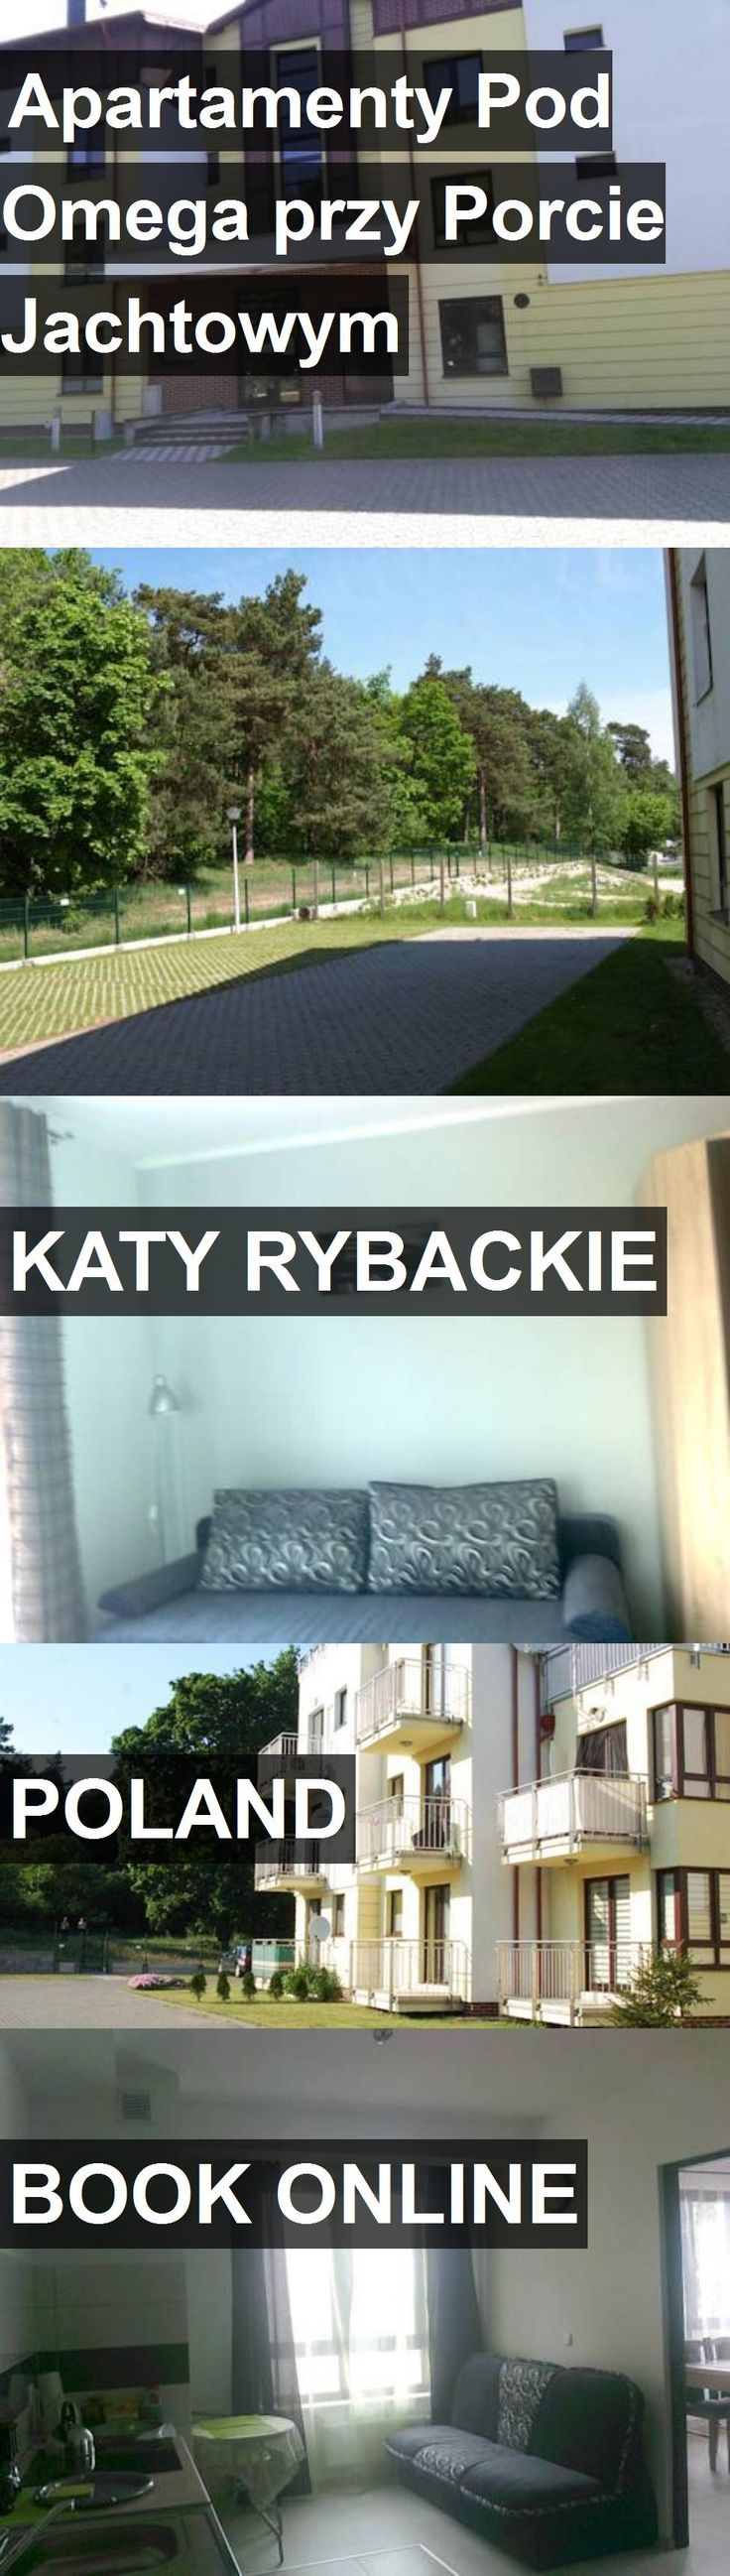 Hotel Apartamenty Pod Omega przy Porcie Jachtowym in Katy Rybackie, Poland. For more information, photos, reviews and best prices please follow the link. #Poland #KatyRybackie #travel #vacation #hotel